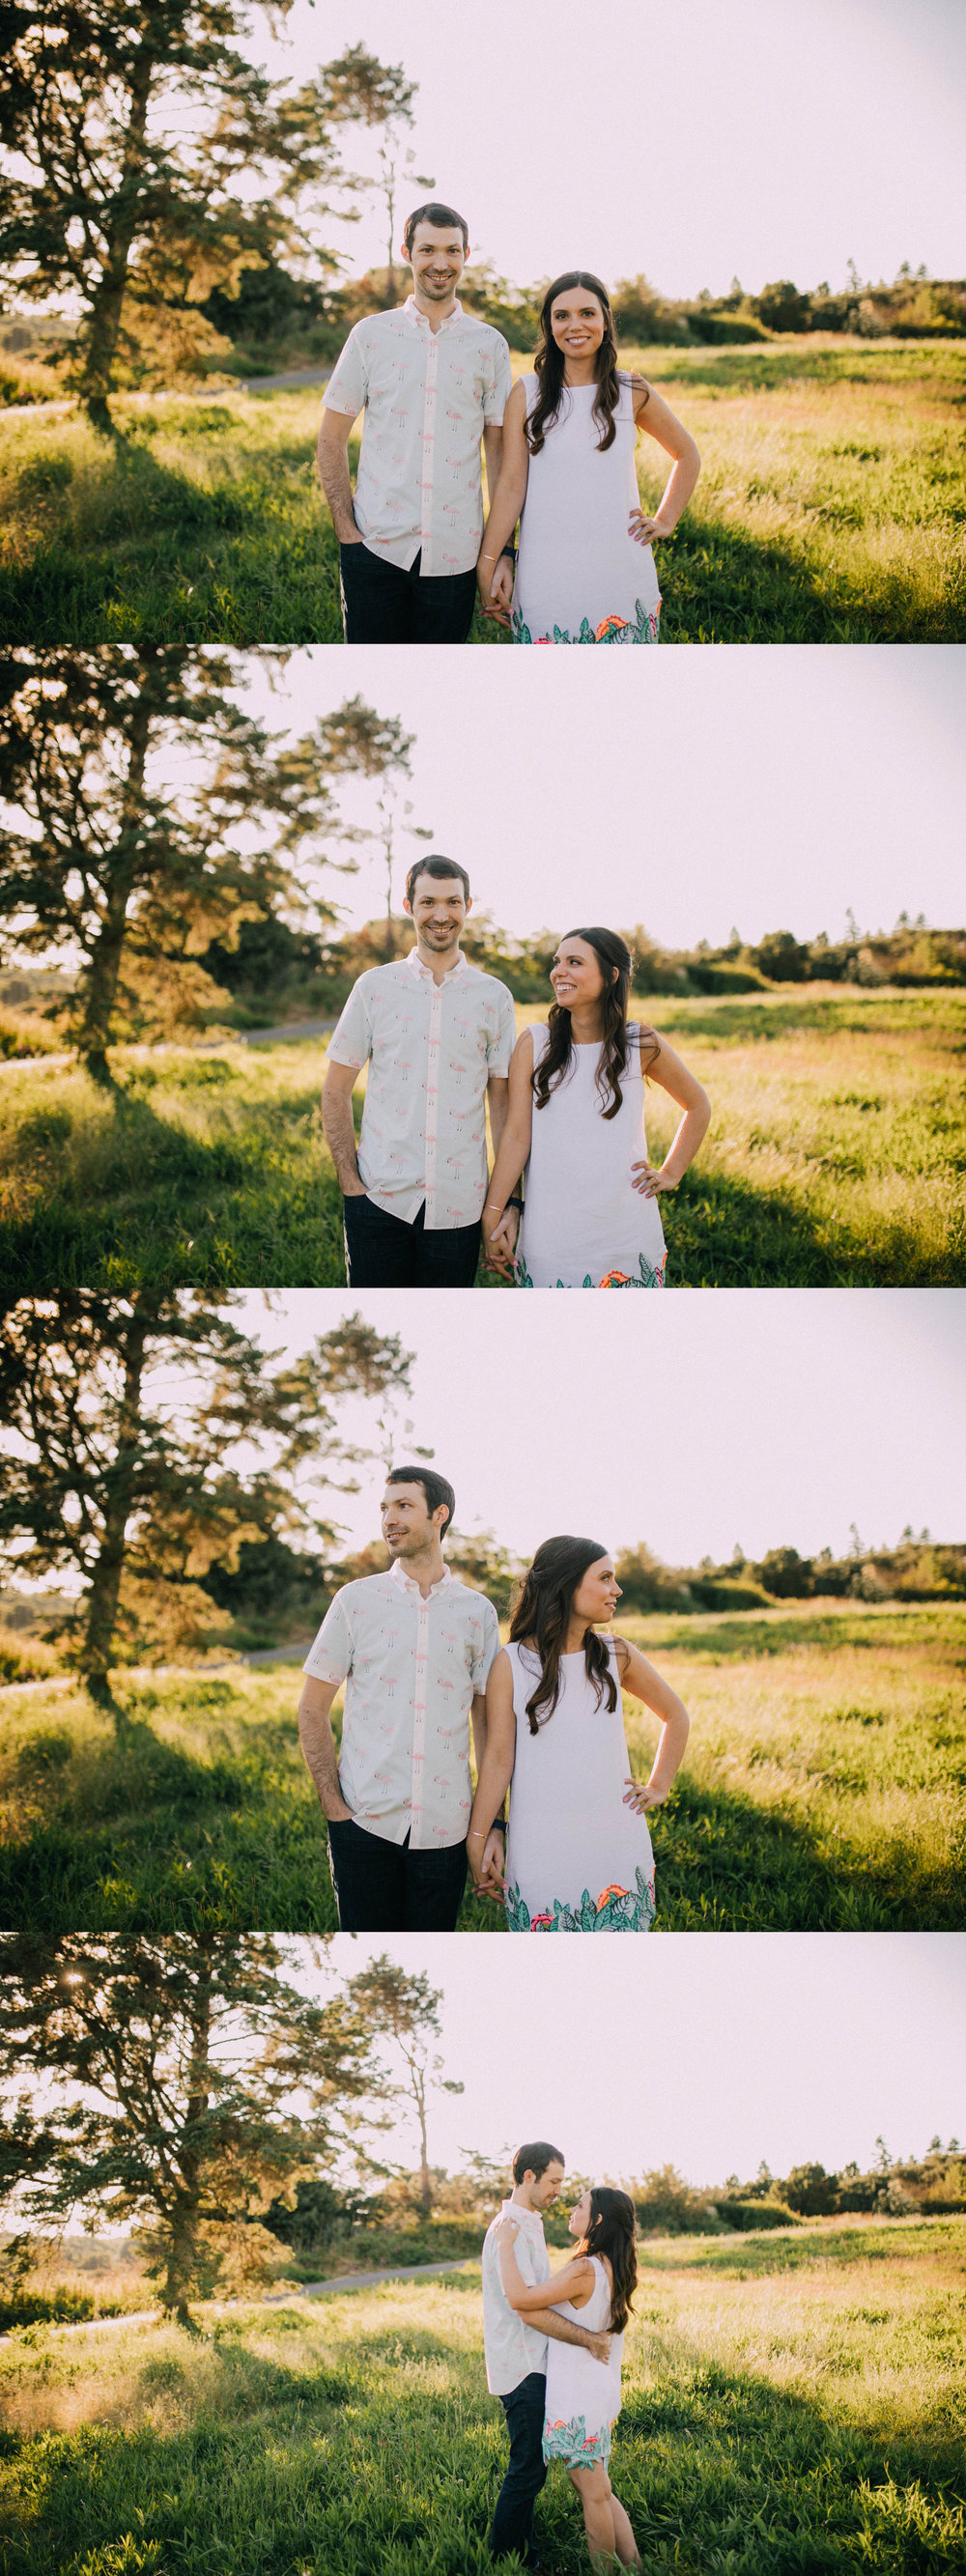 discovery park engagement photography seattle washington wedding photographer romantic-240.jpg